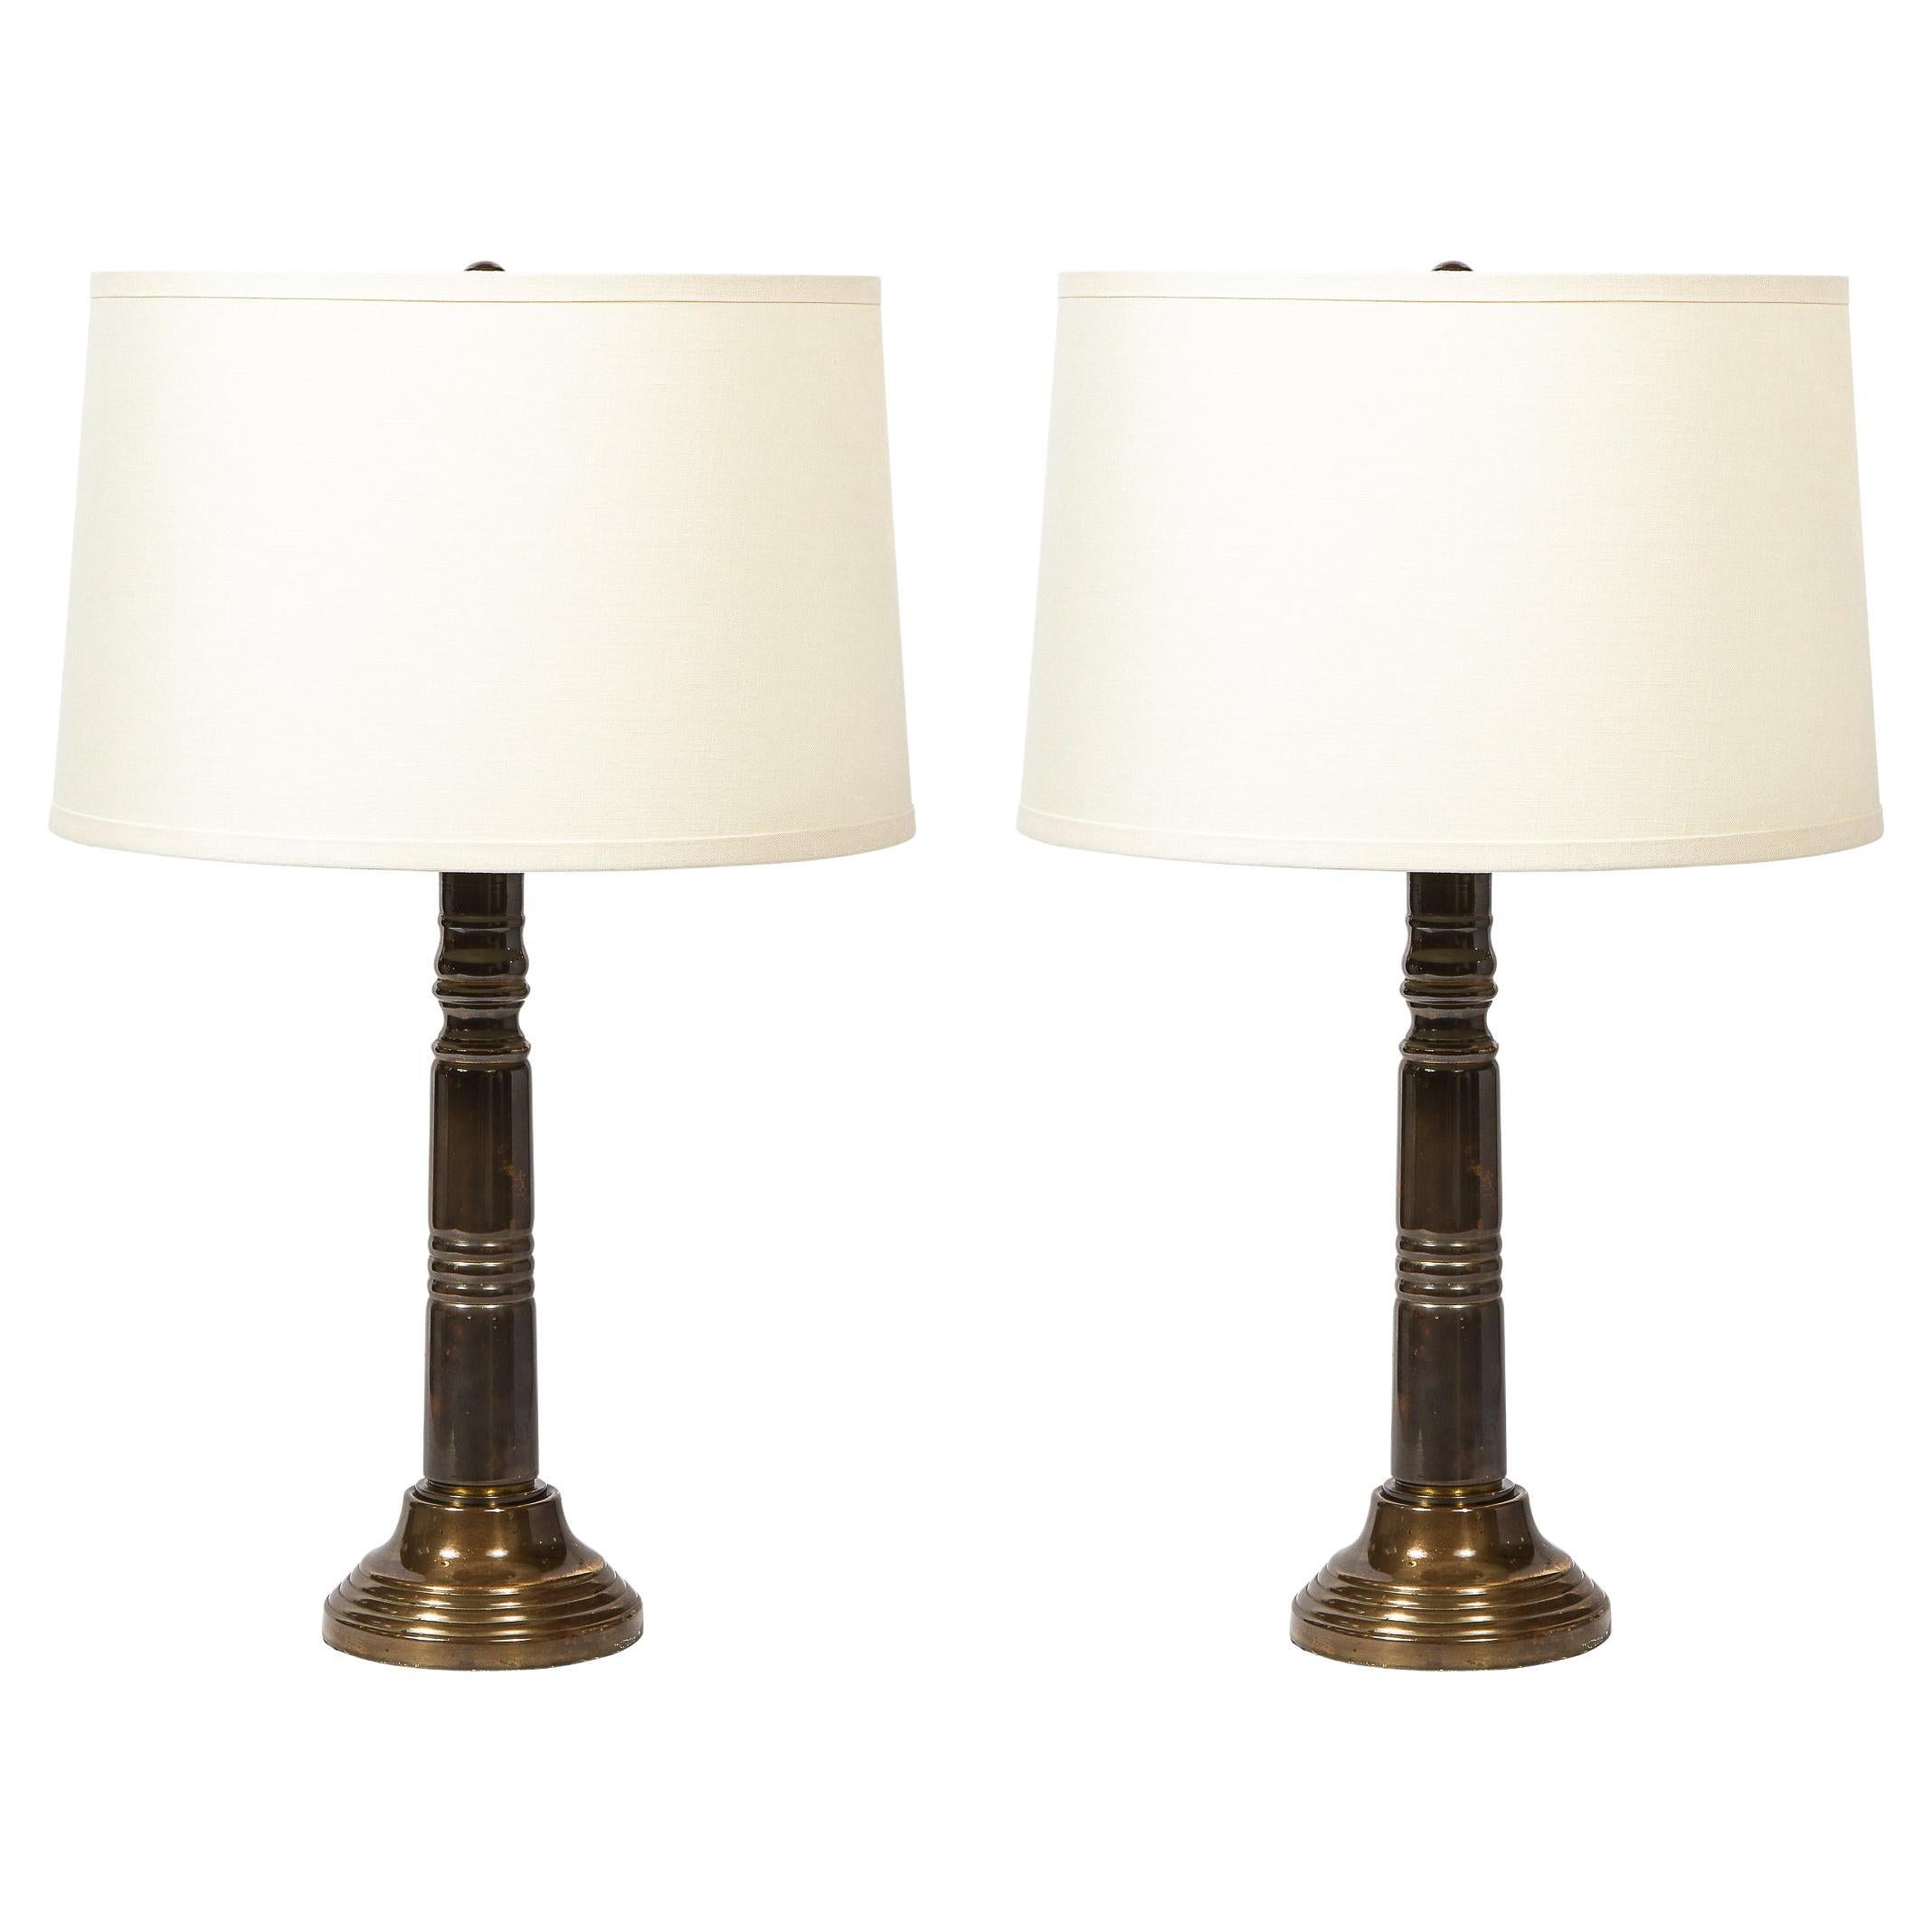 Pair of Art Deco Machine Age Skyscraper Style Banded Antique Brass Table Lamps